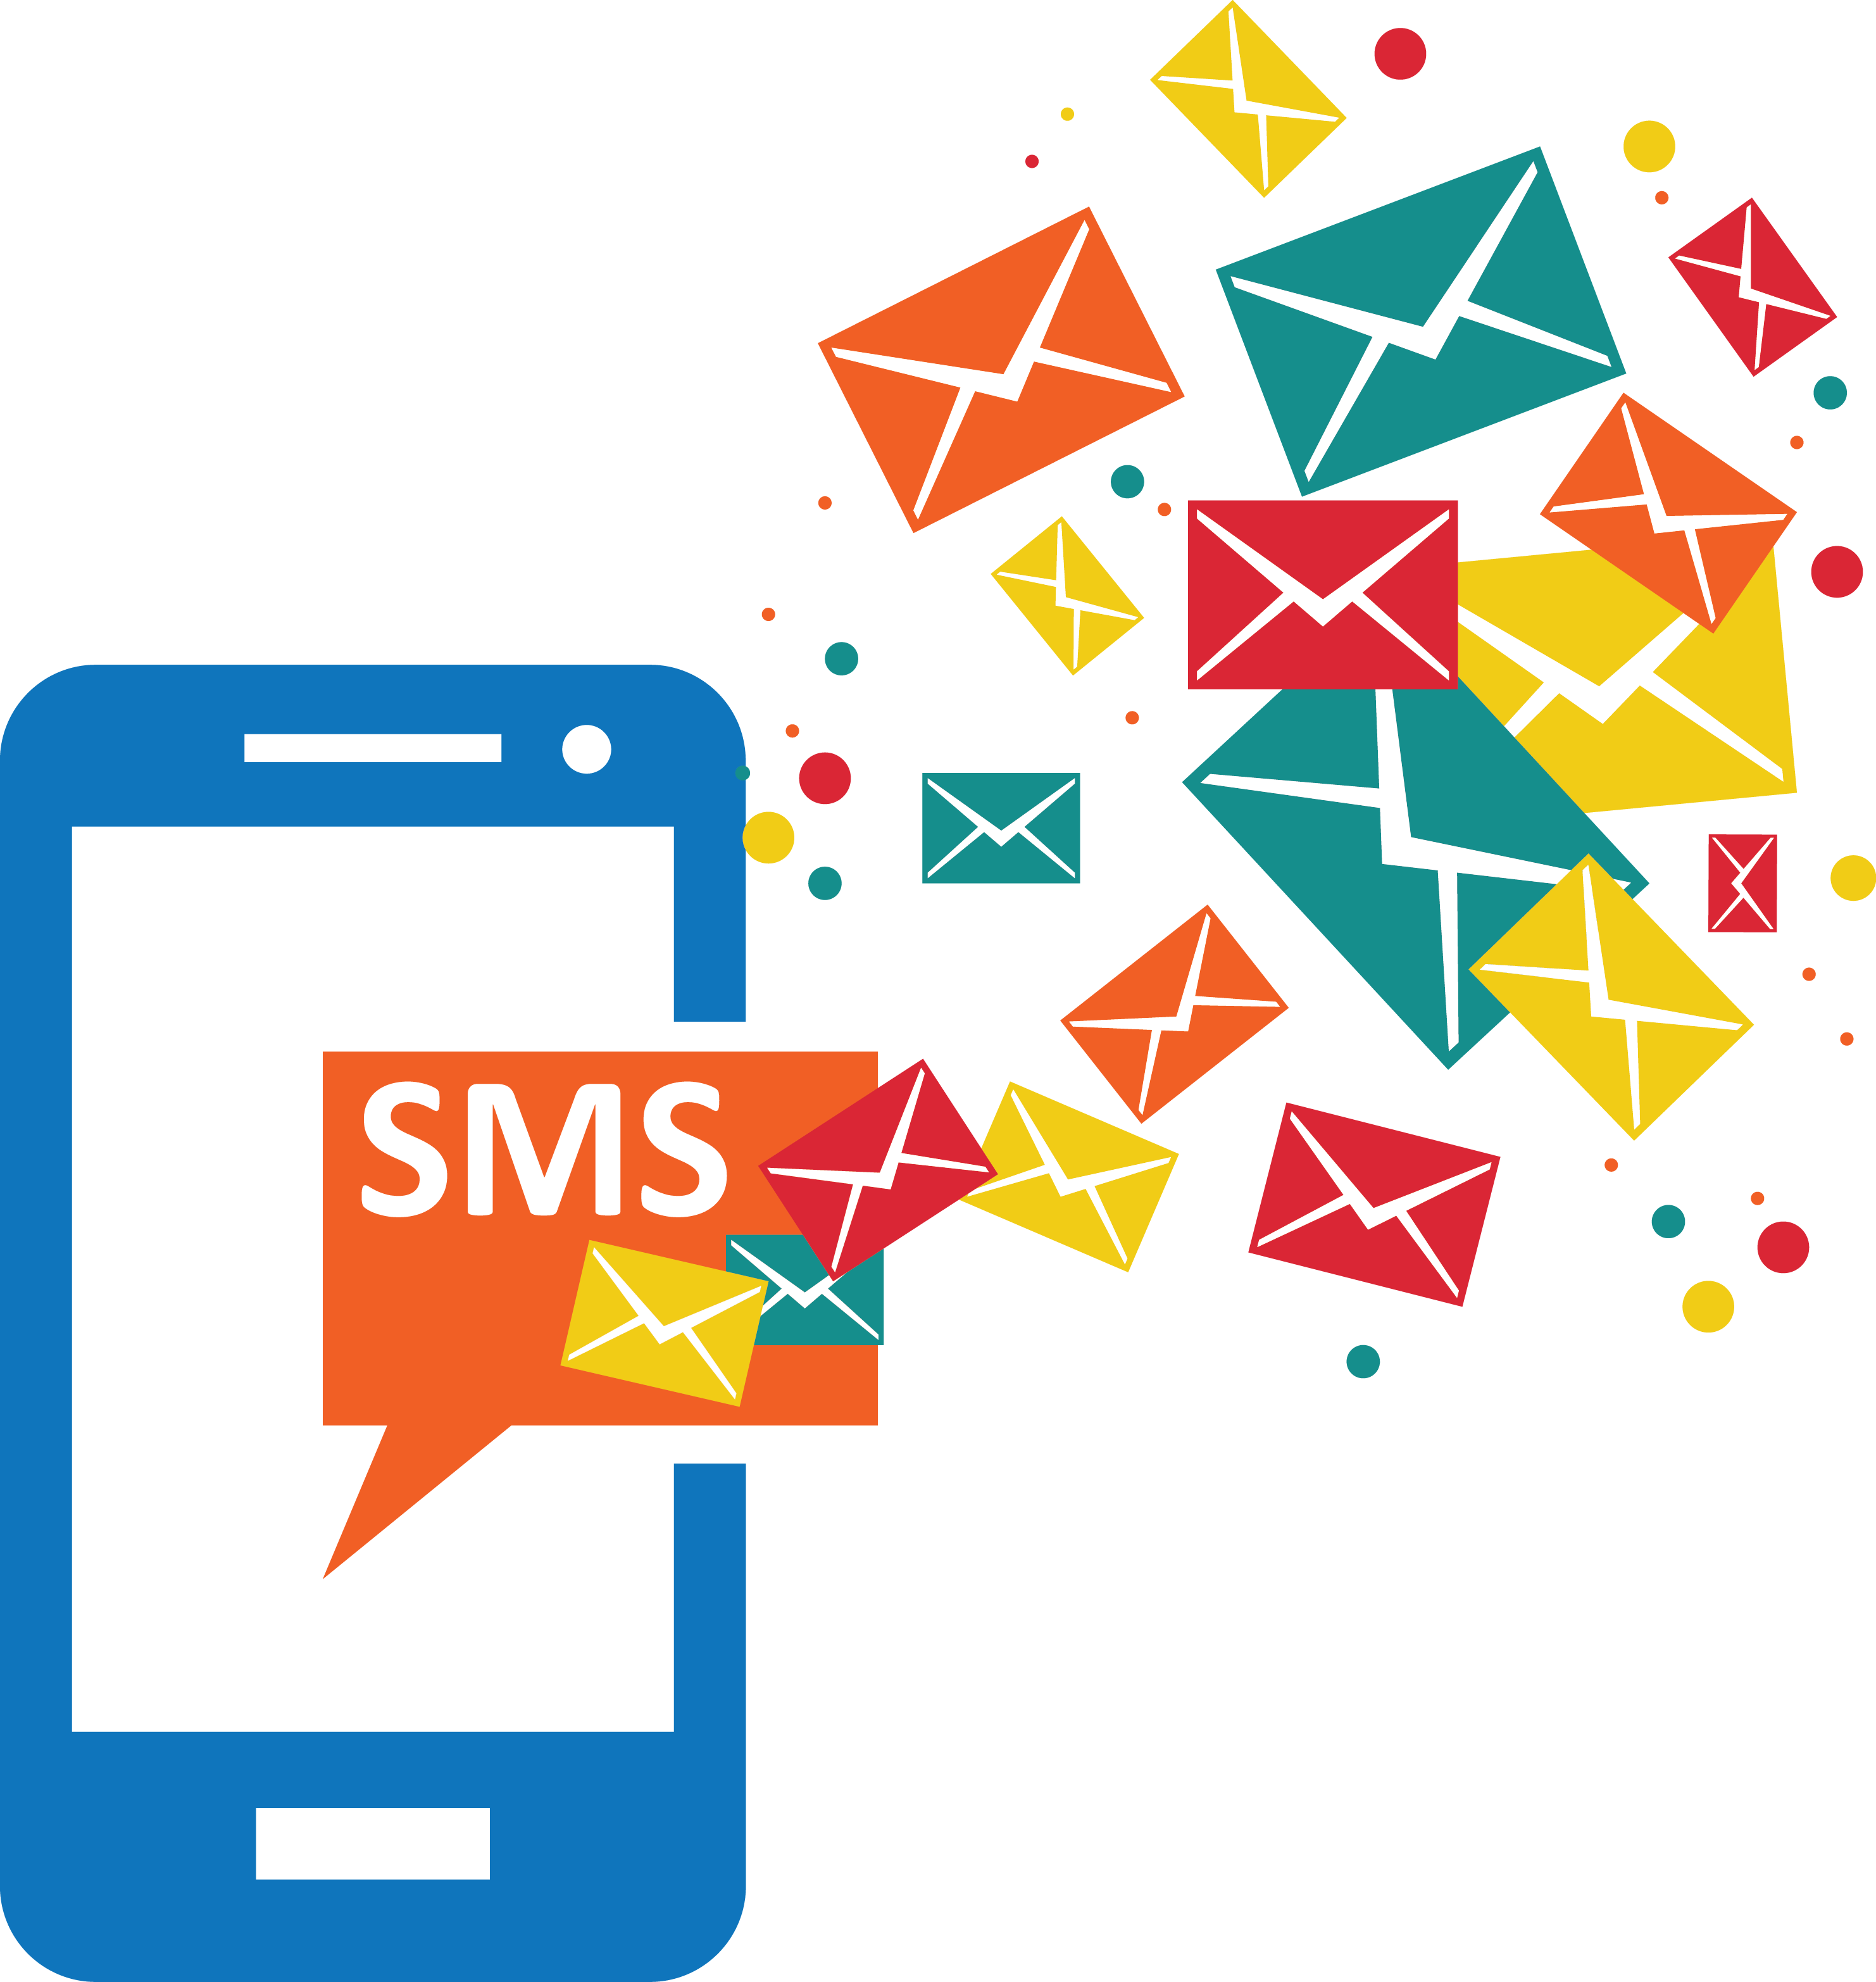 Gestione Sms